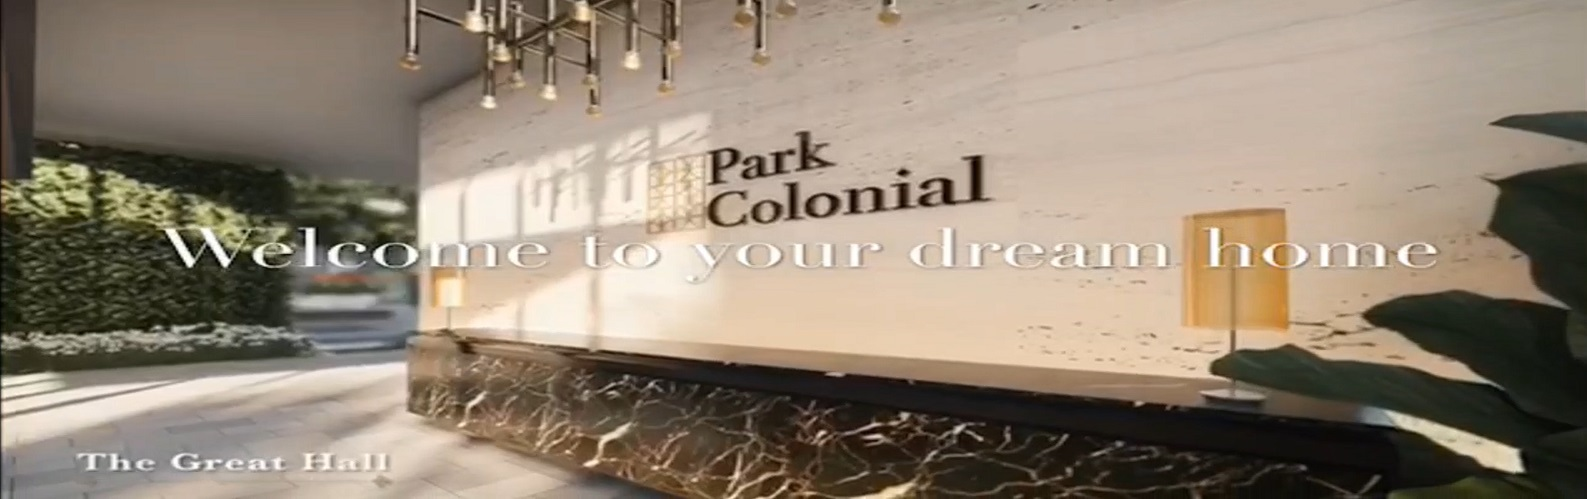 park-colonial-welcome-to-your-dream-home-woodleigh